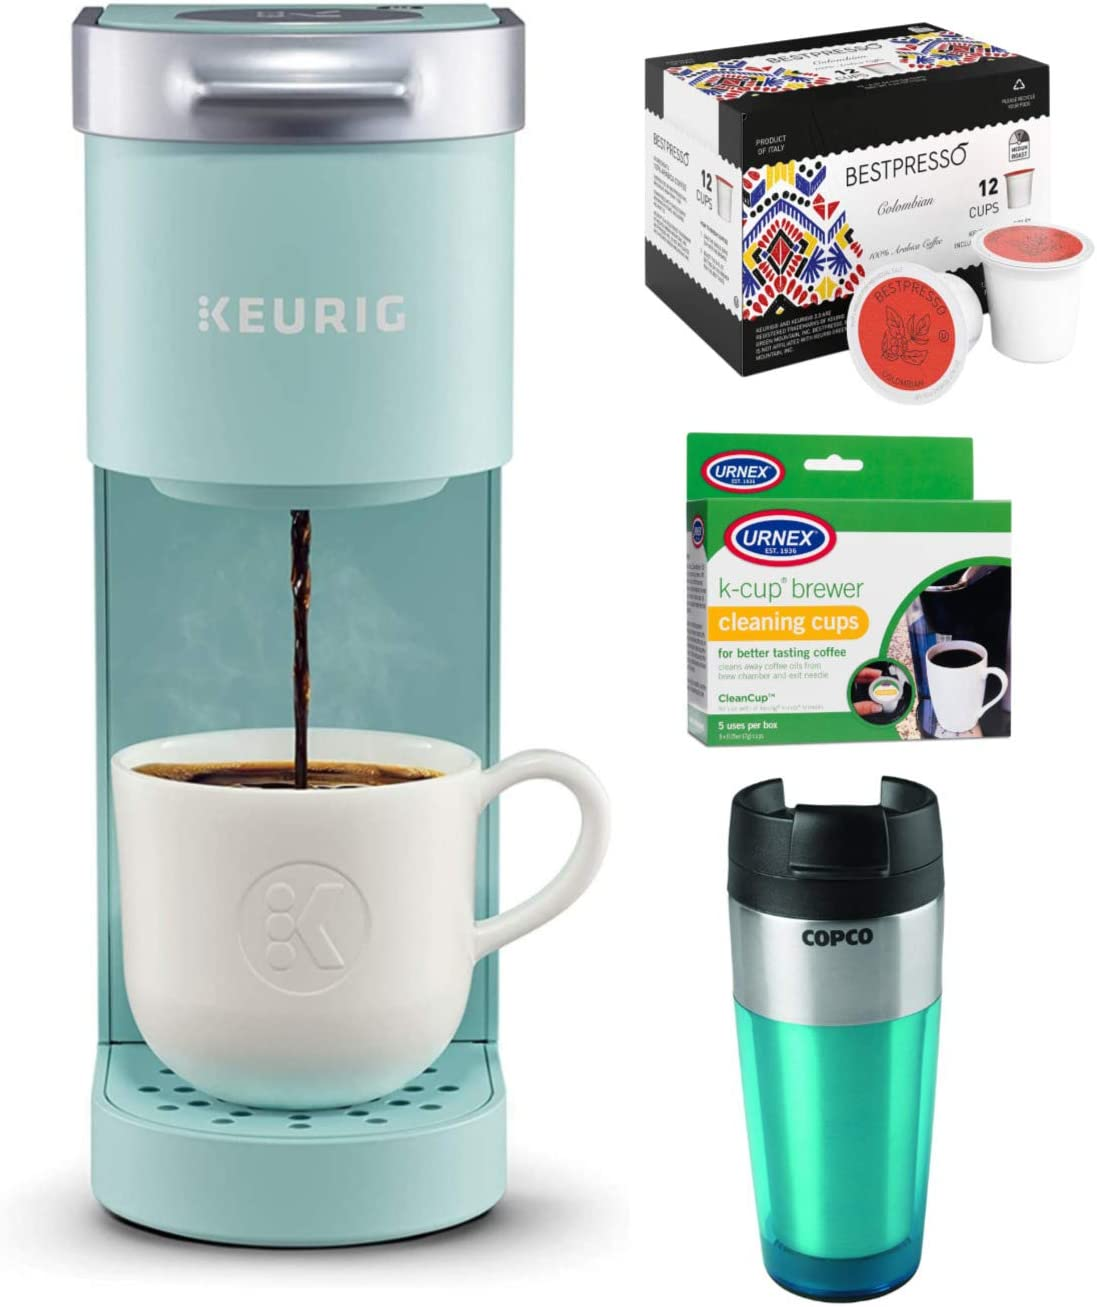 Keurig K-Mini Single Serve Coffee Maker (Oasis) with 12-Count Colombian Roast Coffee, Cleaning Cups & Tumbler Bundle (4 Items)